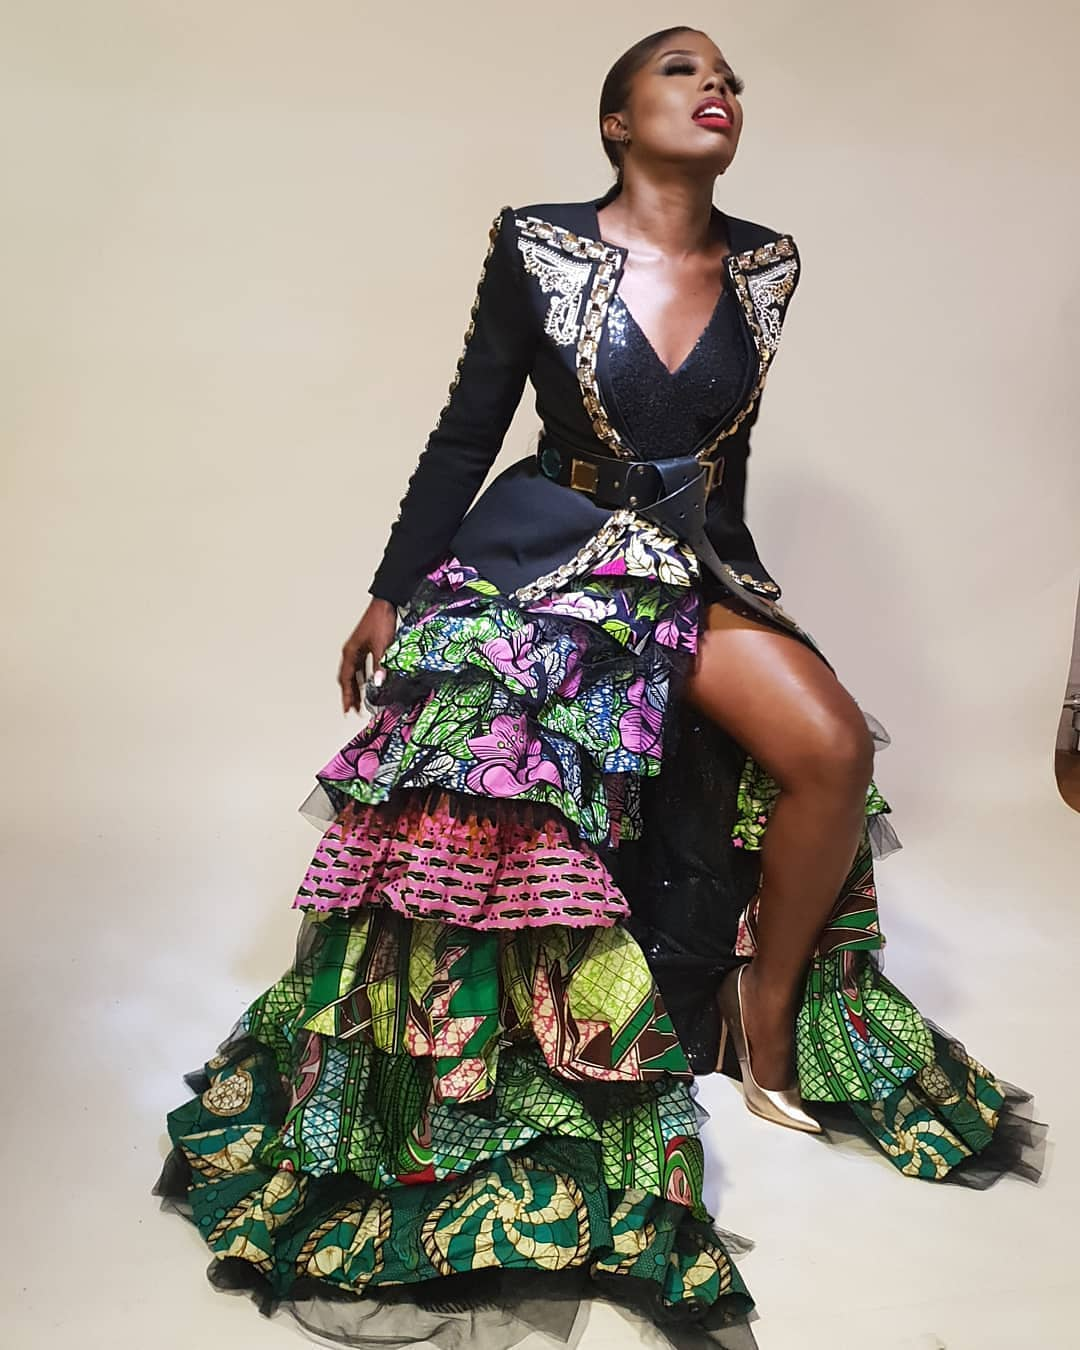 Classic Ankara Gown Styles 2018, ankara gown pictures, ankara gowns for wedding, ankara gown styles in nigeria, ankara gown pictures 2018, latest ankara gown styles 2017, latest ankara gown styles 2018, long ankara gowns, ankara long gown pictures, pictures of simple ankara styles, ankara short gown styles pictures, ankara styles pictures 2017, ankara pencil gown styles, ankara short straight gowns, ankara short pencil gown, ankara styles for wedding occasion, latest ankara styles for traditional wedding, ankara styles for weddings 2017, ankara gown designs, latest ankara styles for wedding 2017, short ankara dresses for weddings, ankara gown styles images, ankara styles gown, ankara short gown styles, ankara long gown styles 2018, latest ankara long gown styles, ankara long gown styles 2017, ankara short gown styles 2017, trendy ankara styles 2018, ankara styles 2018 for ladies, latest ankara styles for wedding 2018, ankara styles pictures, latest ankara styles 2018 for ladies, ankara styles 2018 gown, 2017 ankara gowns, latest ankara styles for wedding, modern ankara styles, ankara styles 2017 for ladies, ankara long gowns 2018, latest ankara long gown styles 2017